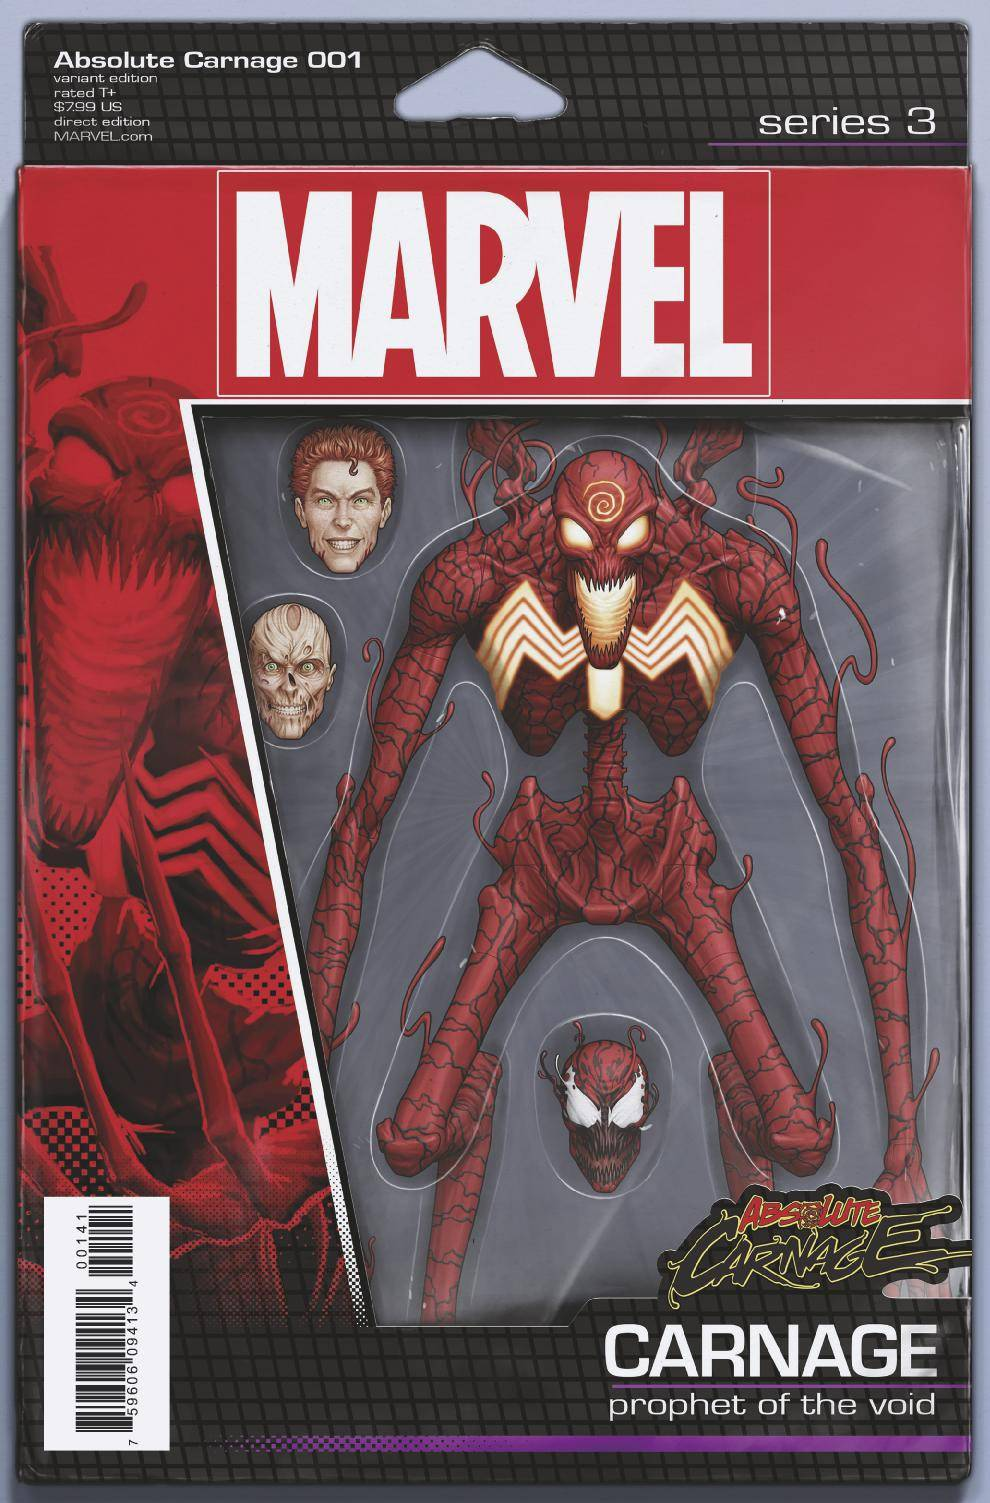 ABSOLUTE CARNAGE 1 of 4 CHRISTOPHER ACTION FIGURE VAR AC.jpg